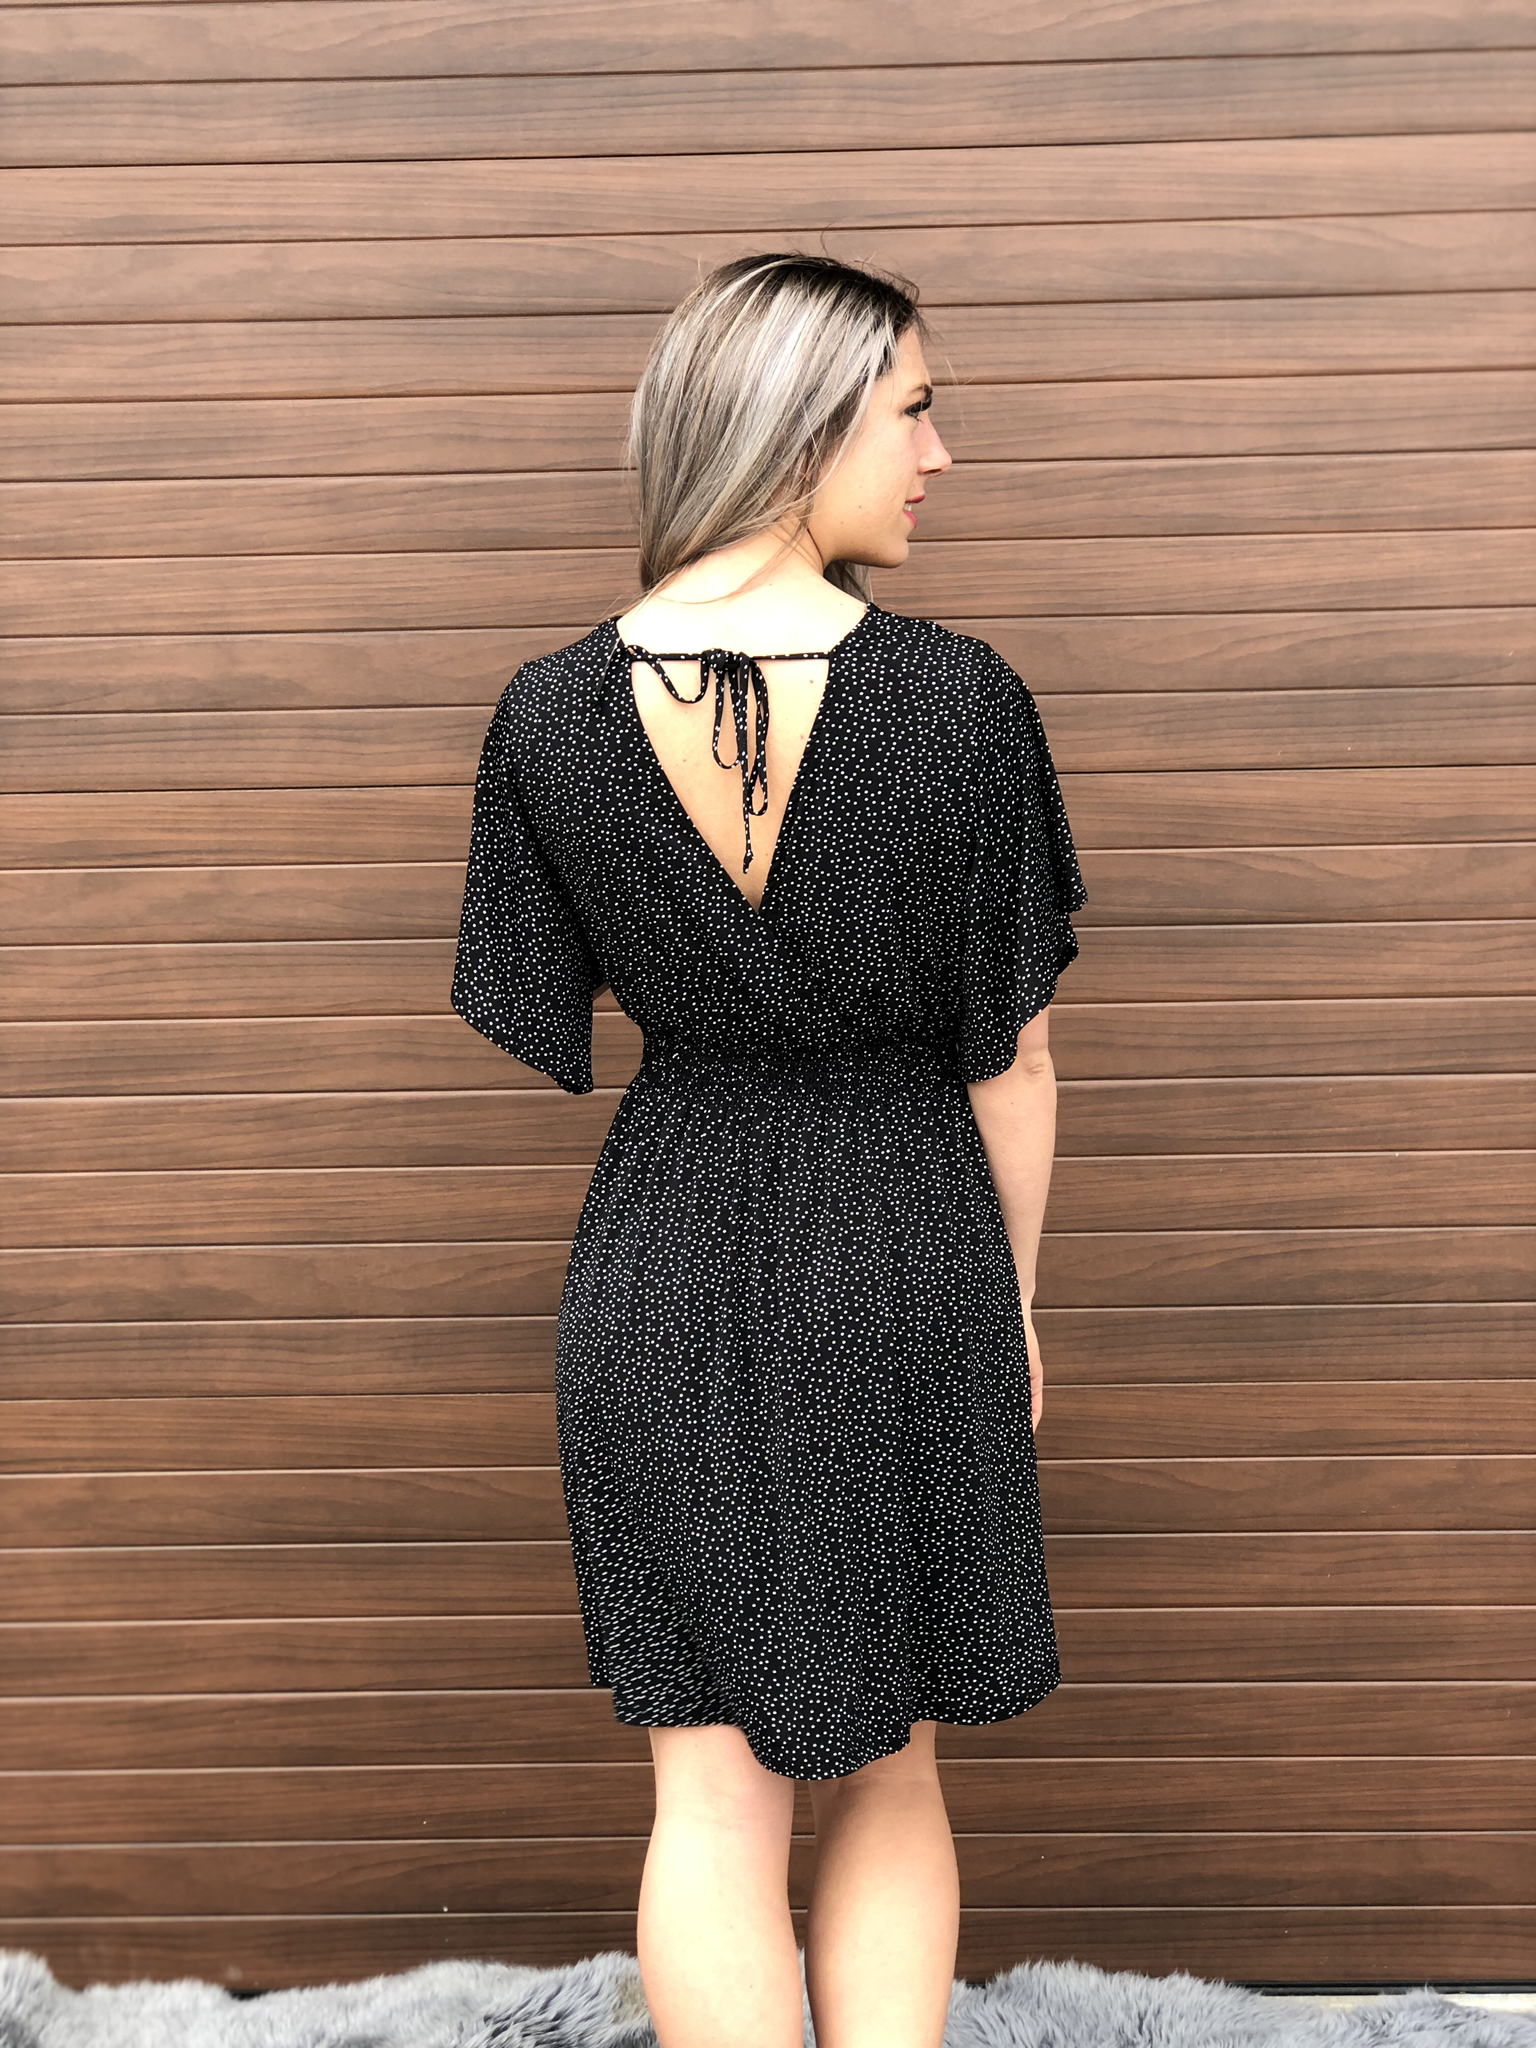 Black Polka Dot Dress - RESTOCK!